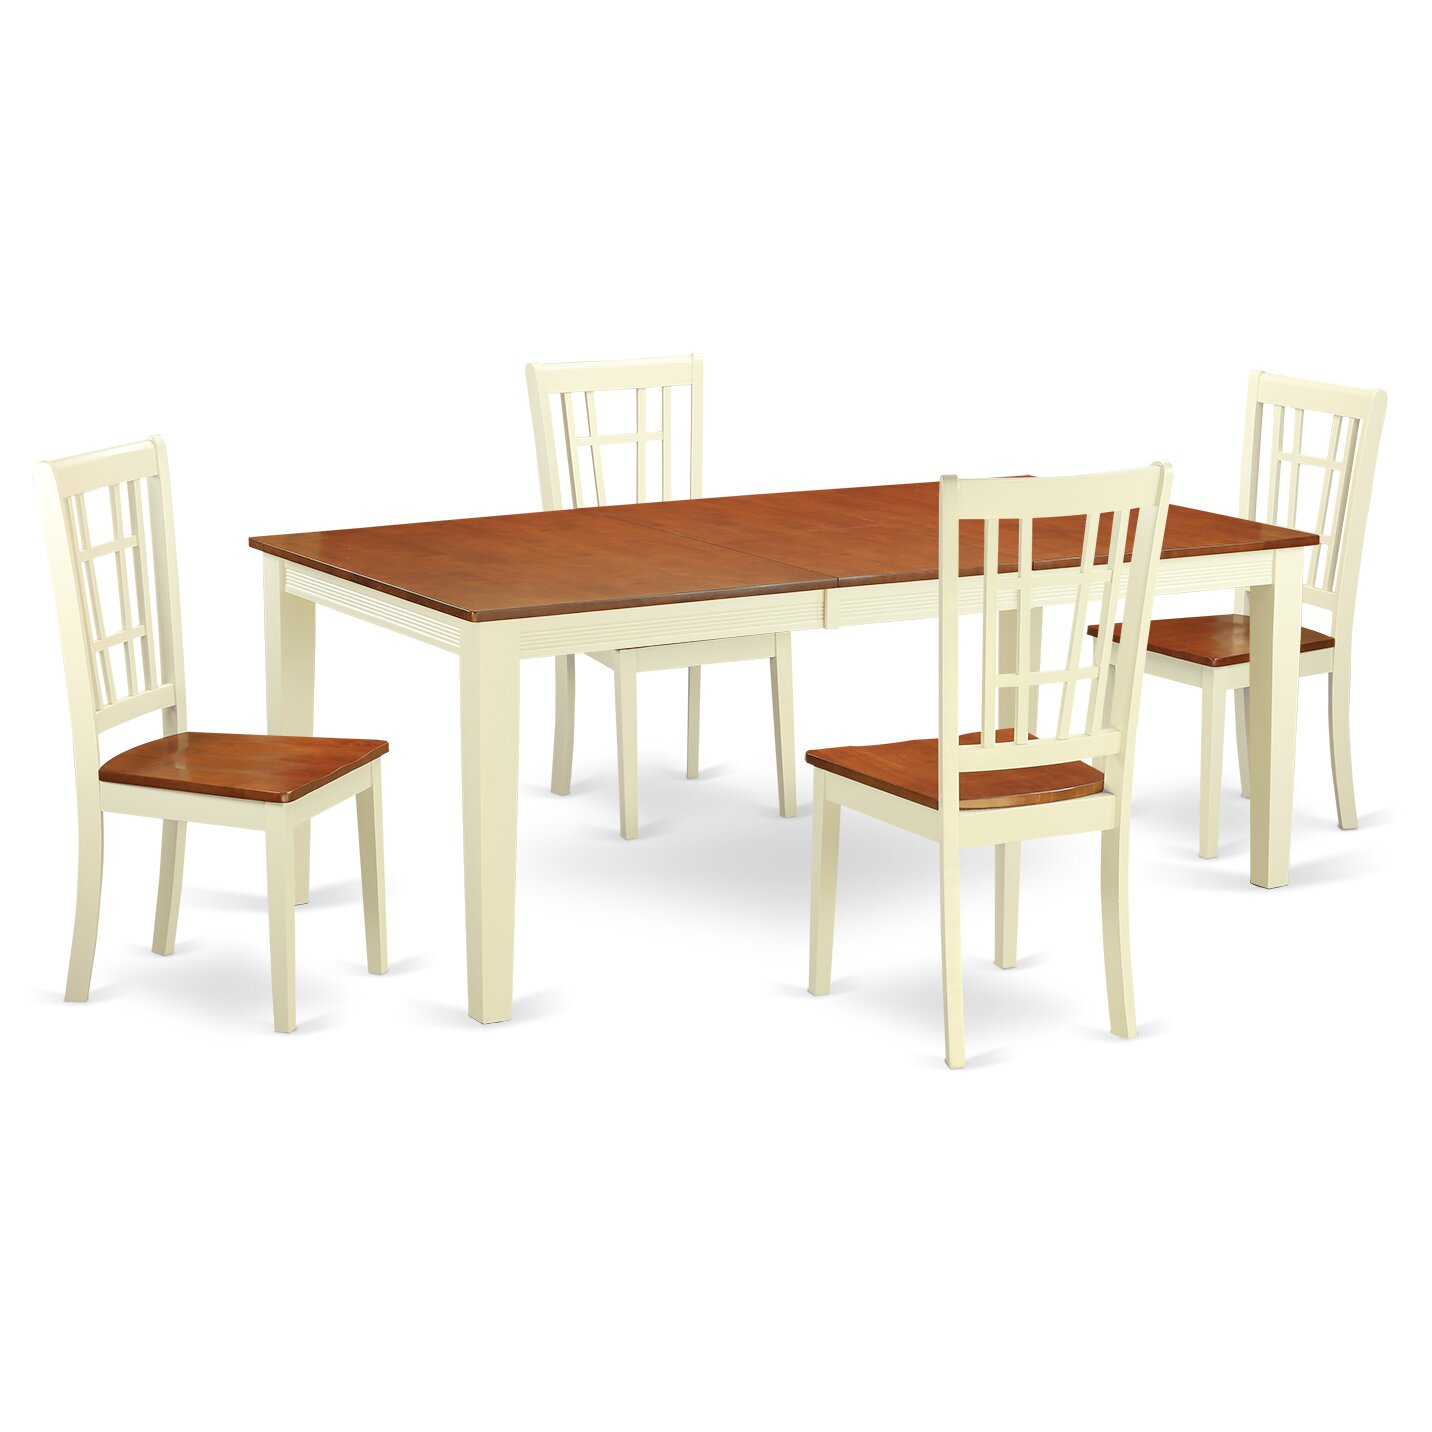 East west quincy 5 piece dining set wayfair for Kitchen dining table chairs